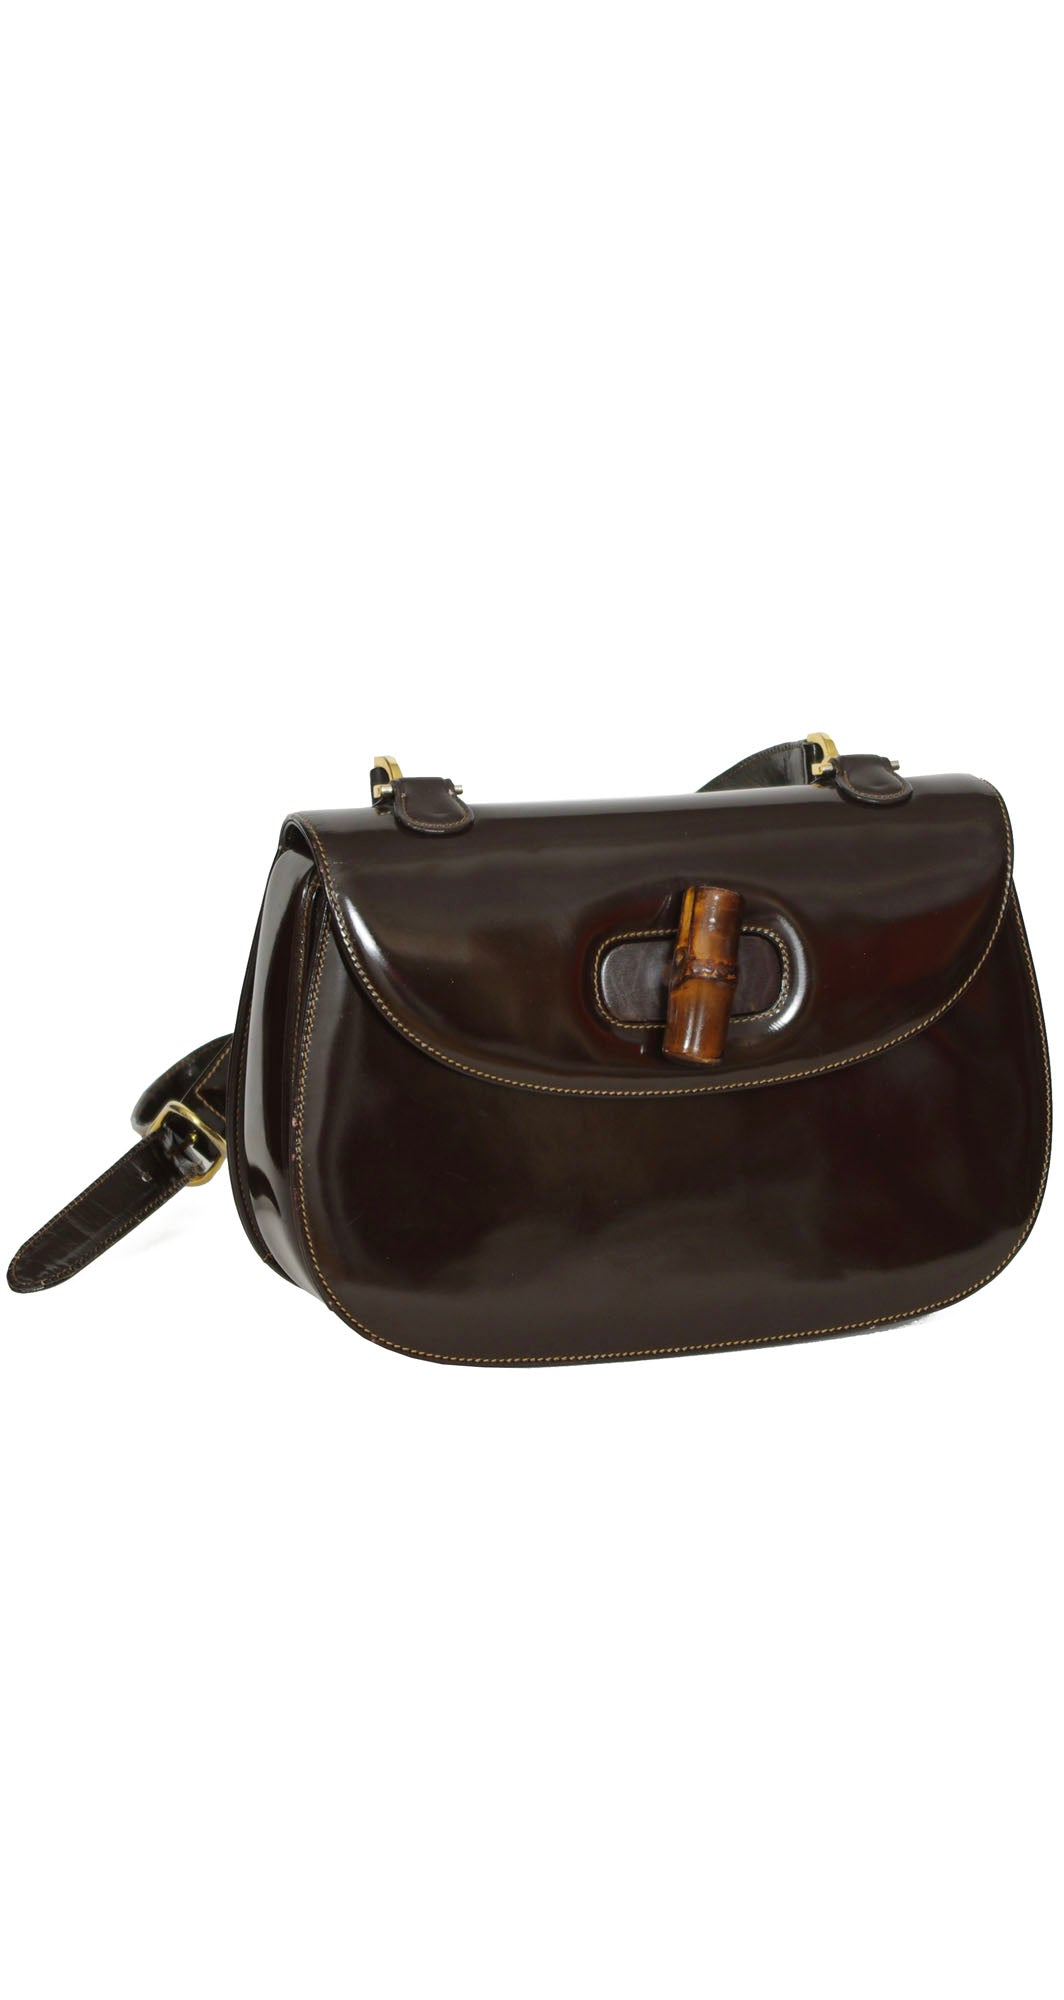 1970s Iconic Bamboo Clasp Brown Patent Leather Shoulder Bag